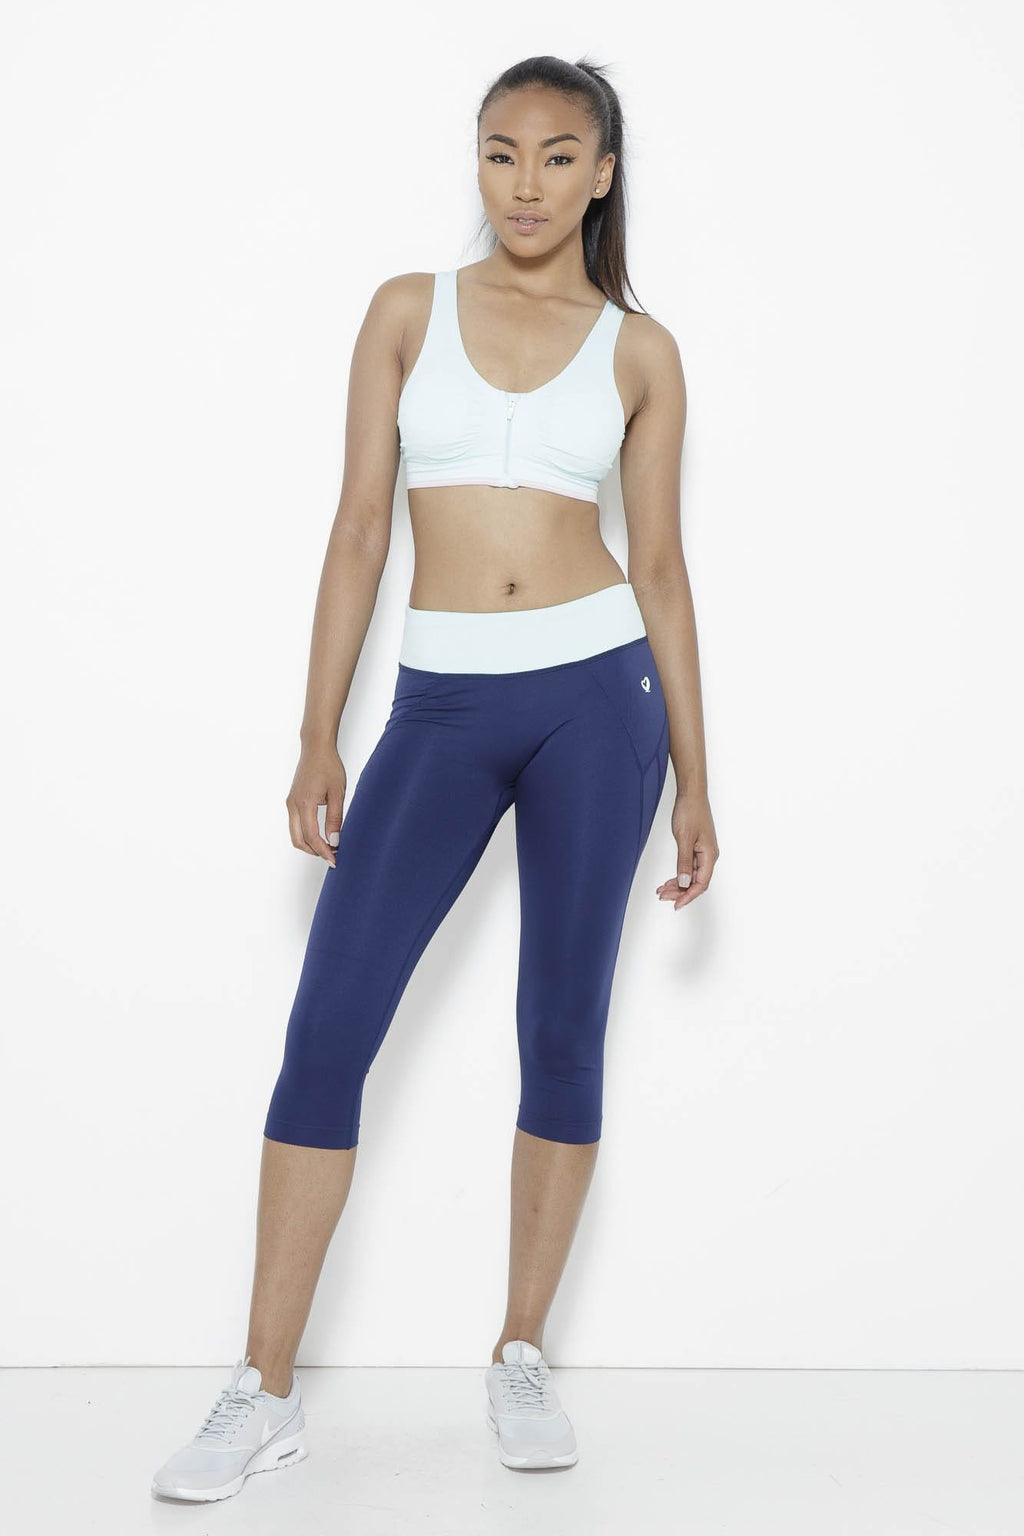 fair-shade - Shear Sighted Capris- Navy/Mint - Clothing